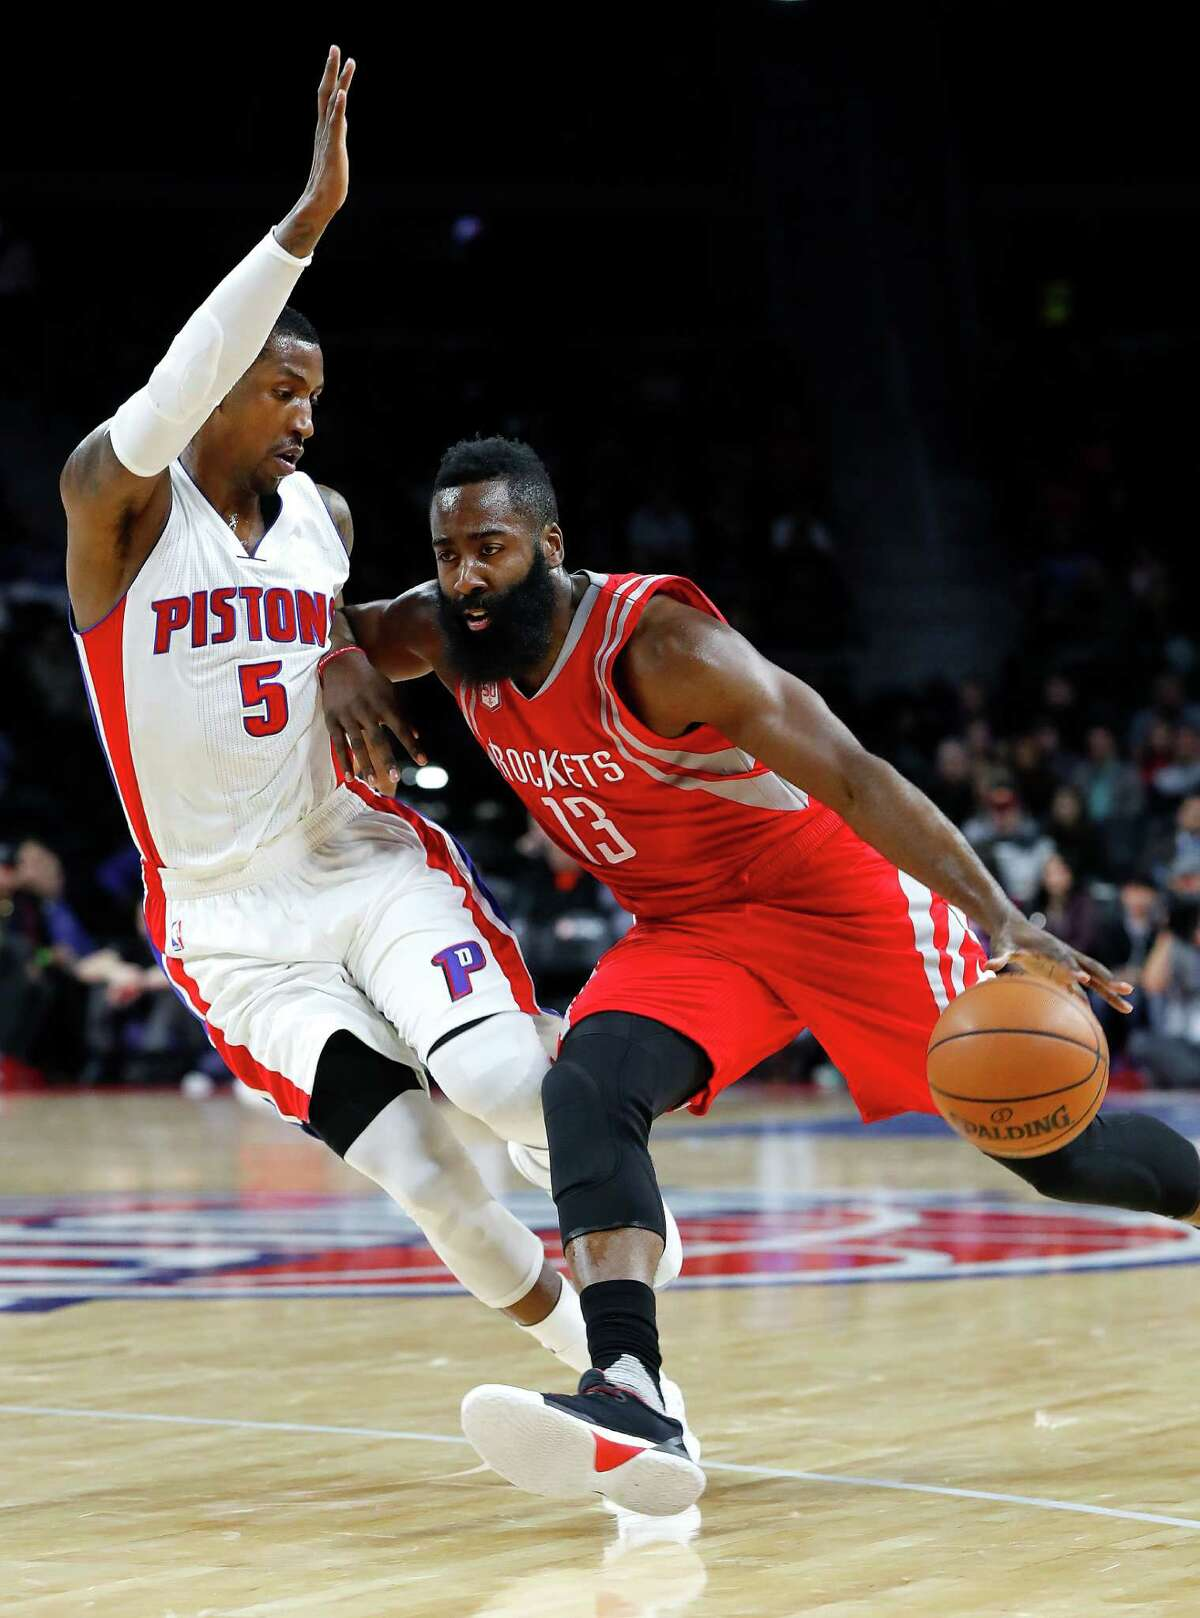 Houston Rockets guard James Harden (13) drives against Detroit Pistons guard Kentavious Caldwell-Pope (5) in the first half of an NBA basketball game in Auburn Hills, Mich., Monday, Nov. 21, 2016. (AP Photo/Paul Sancya)